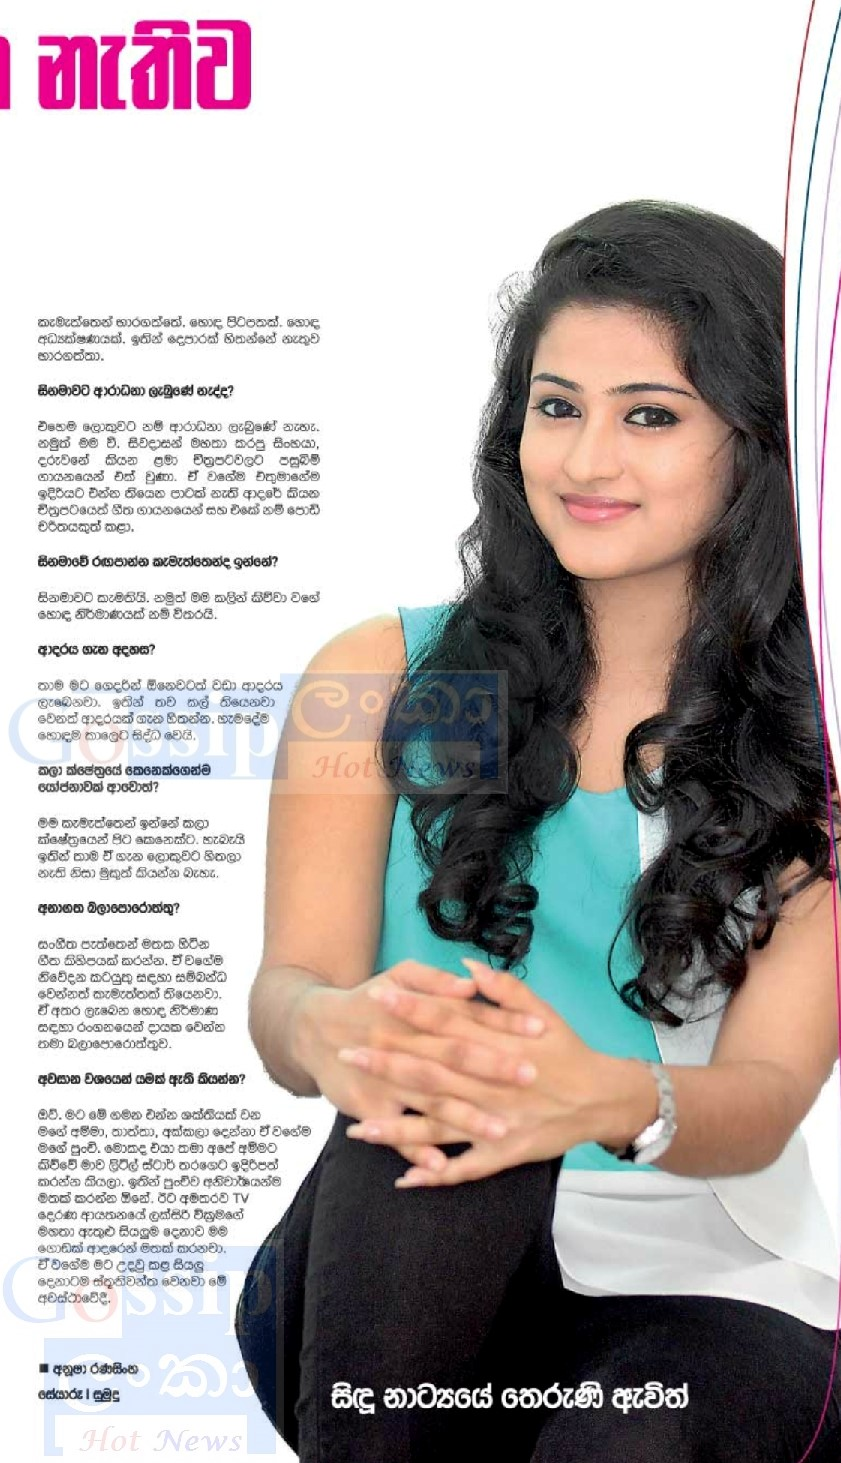 Gossip Chat with sidu teledrama Maneesha Chanchala